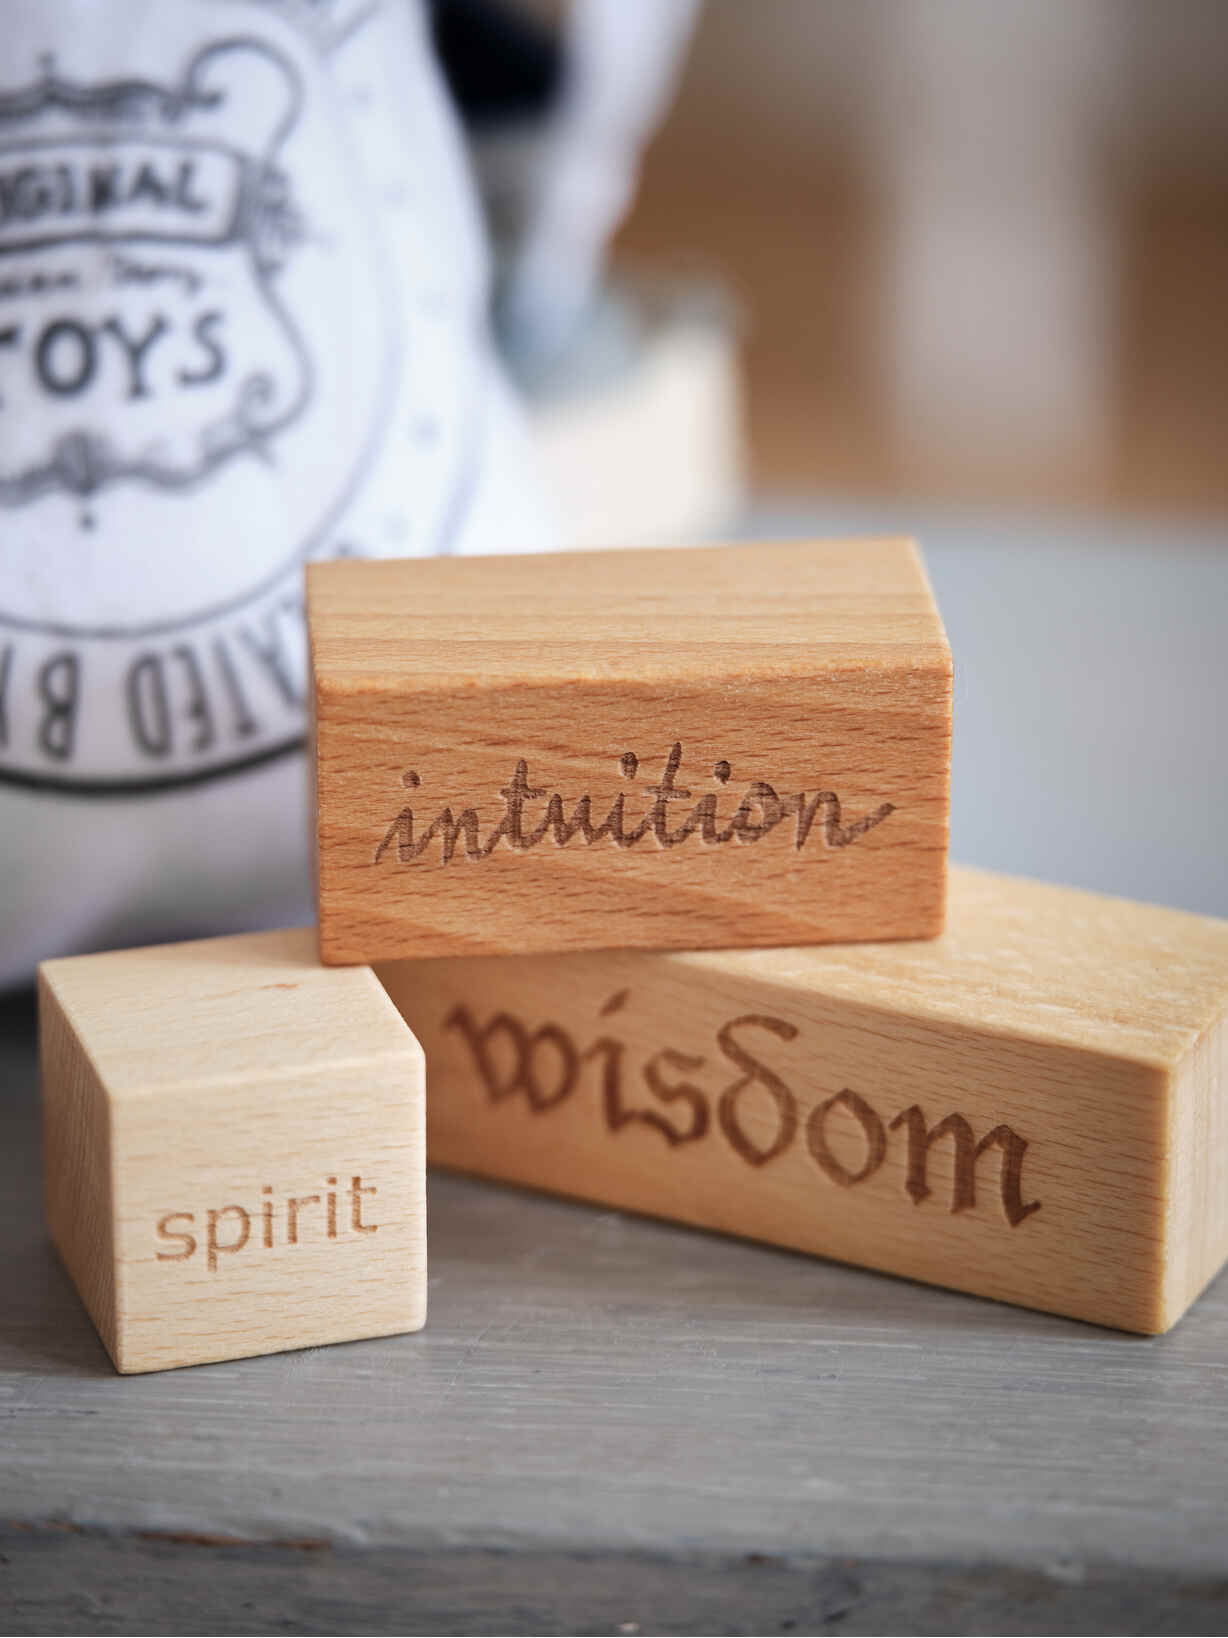 Nordic House Hand-Crafted Wooden Blocks - Wisdom